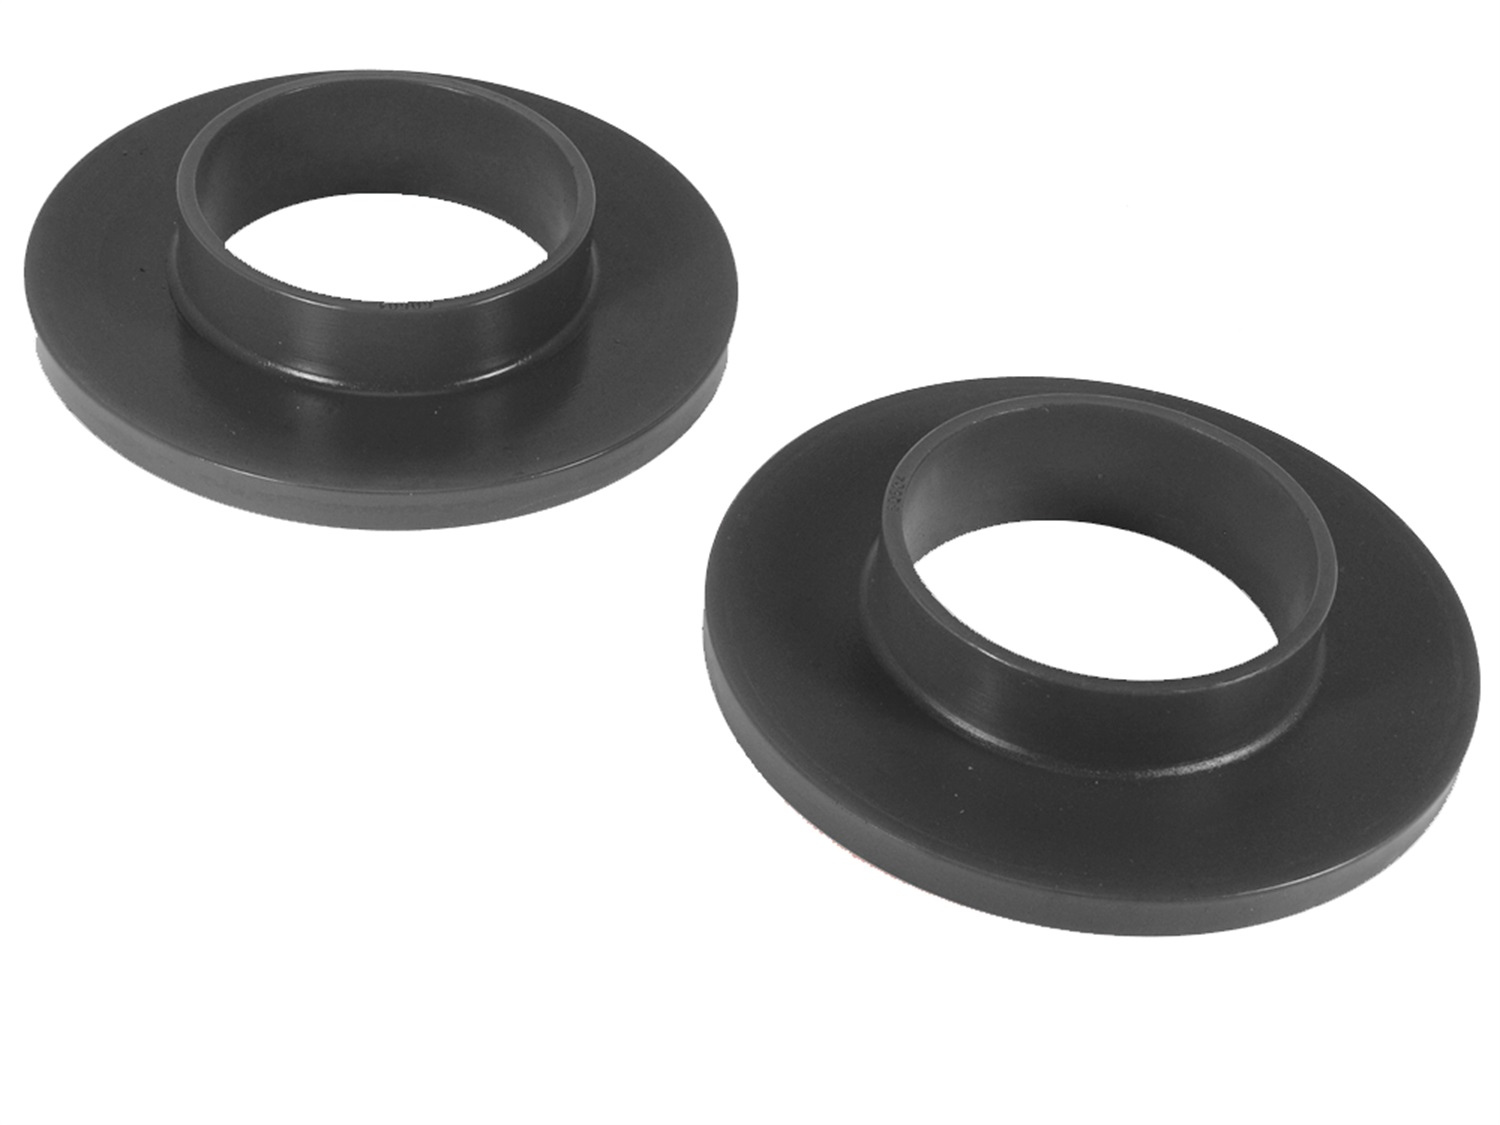 Prothane 6-1704-BL Coil Spring Isolator Fits 64-73 Mustang